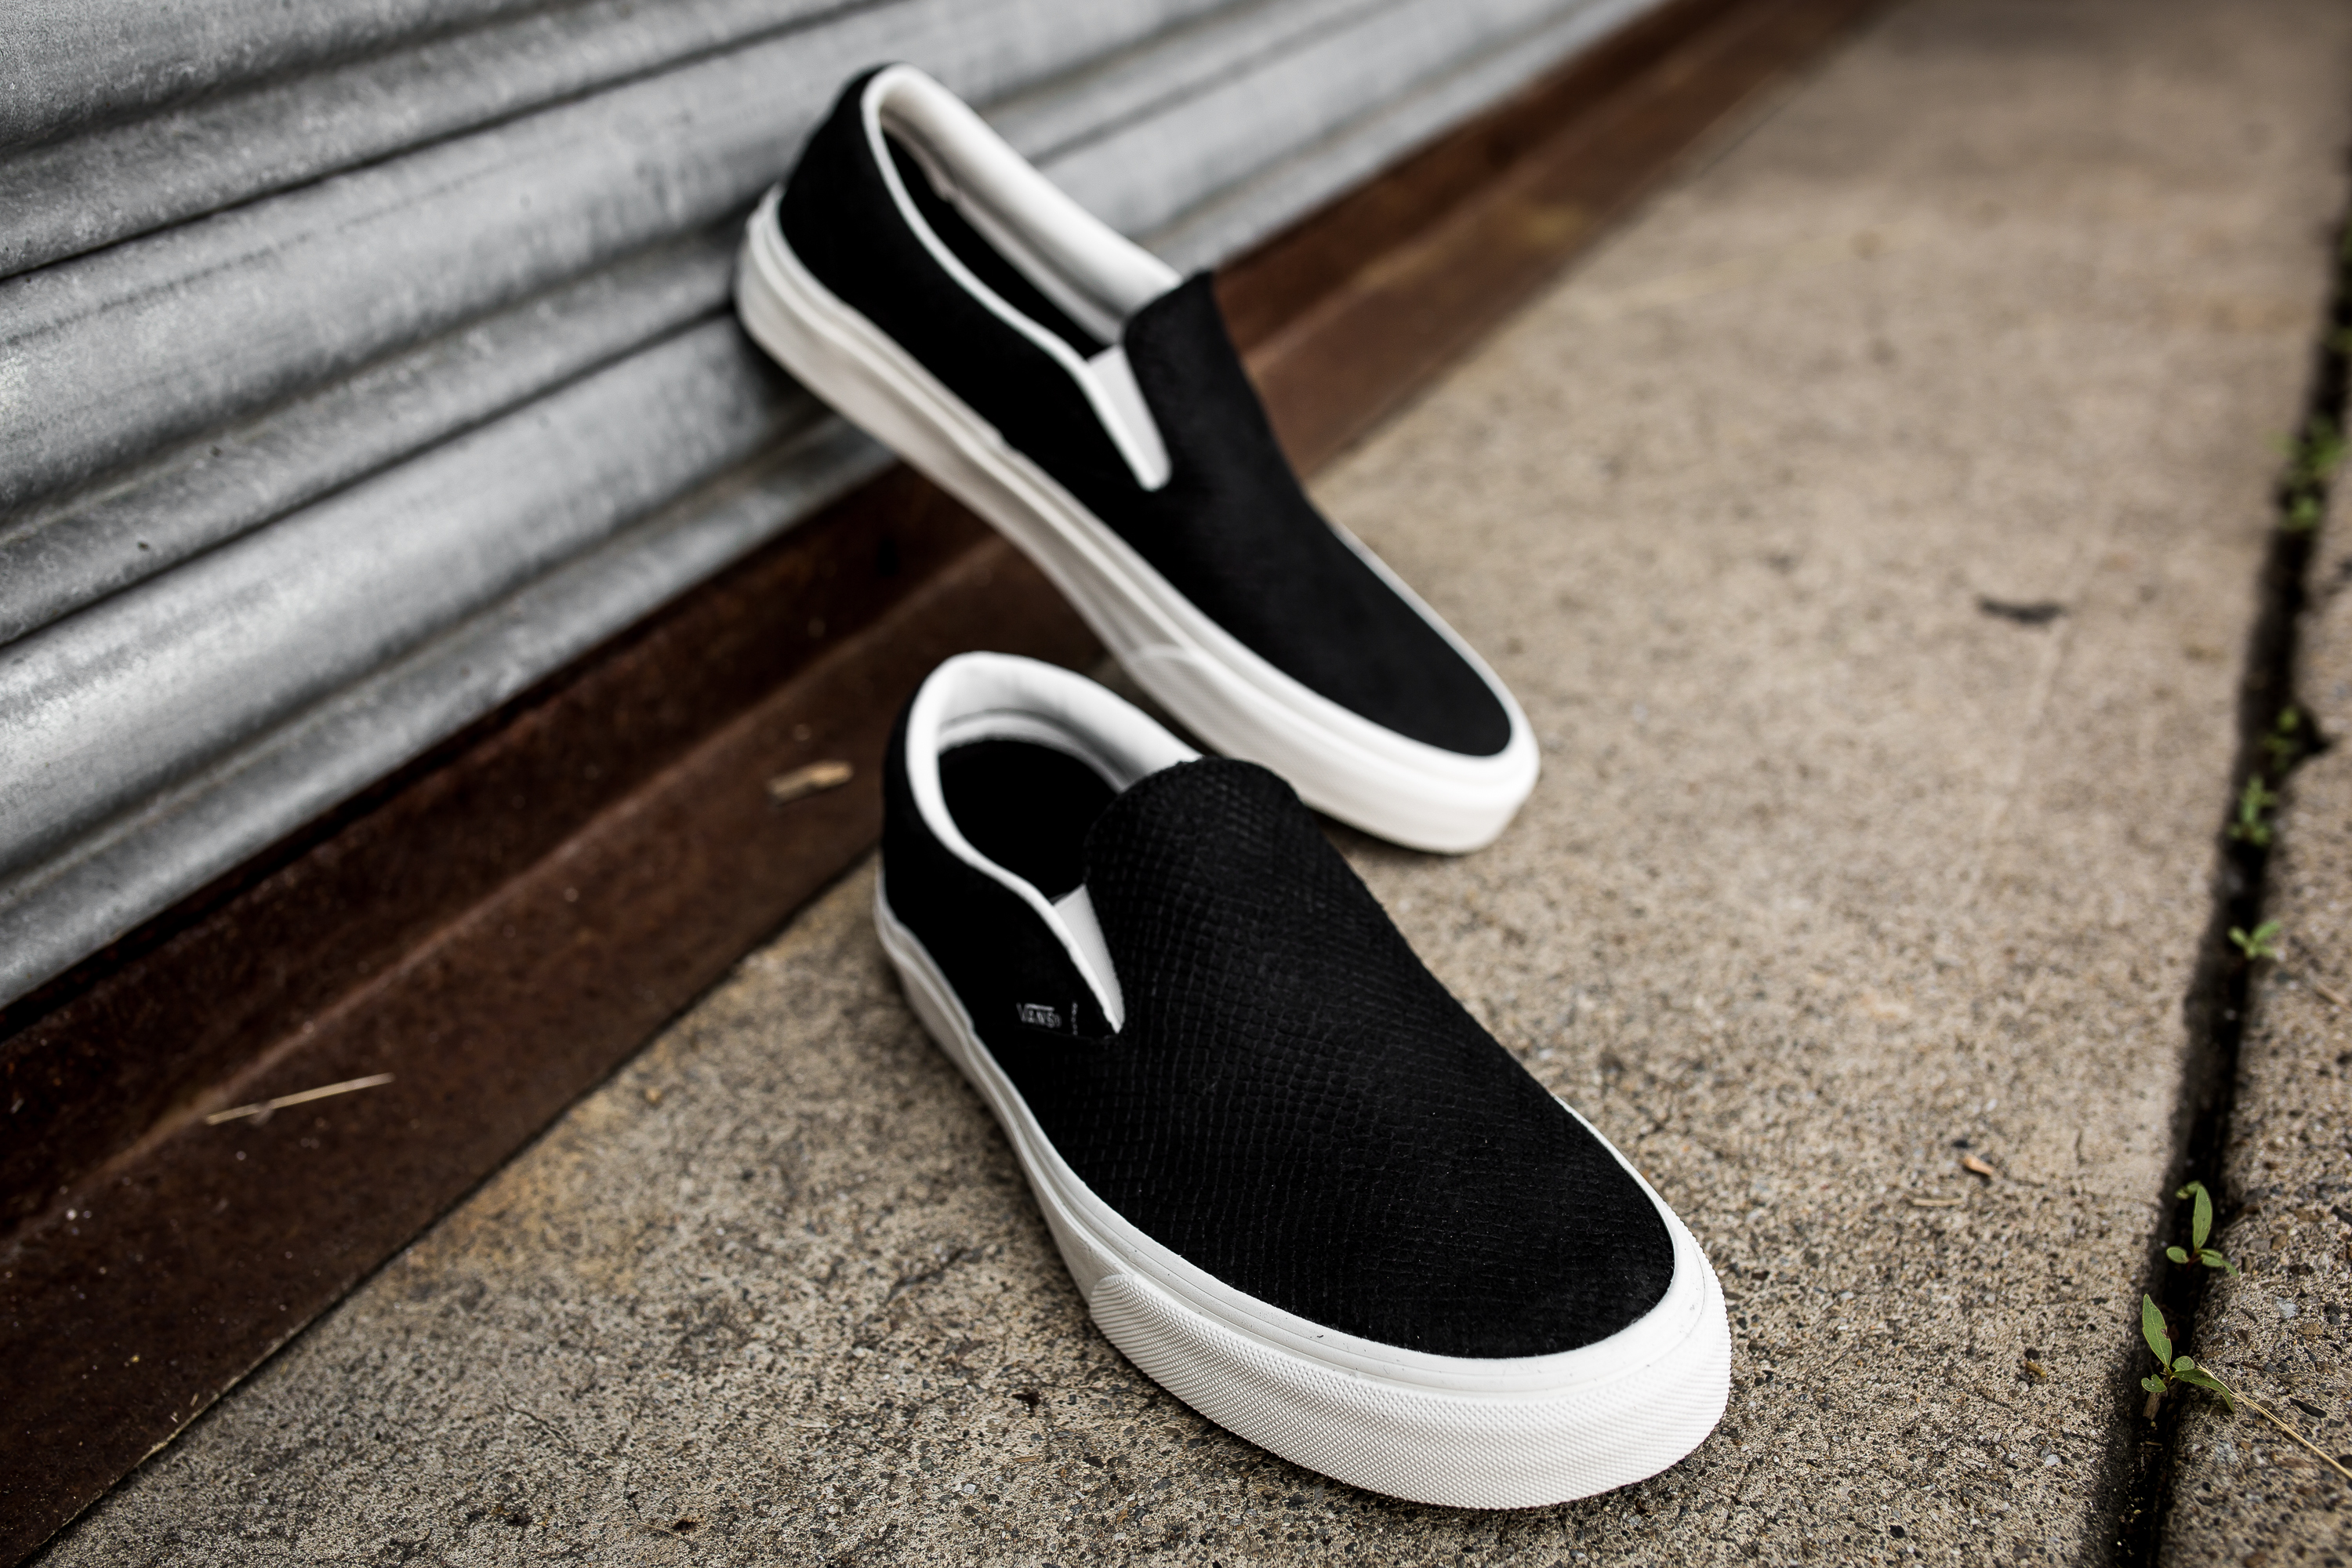 vans classic slip on shoes black white